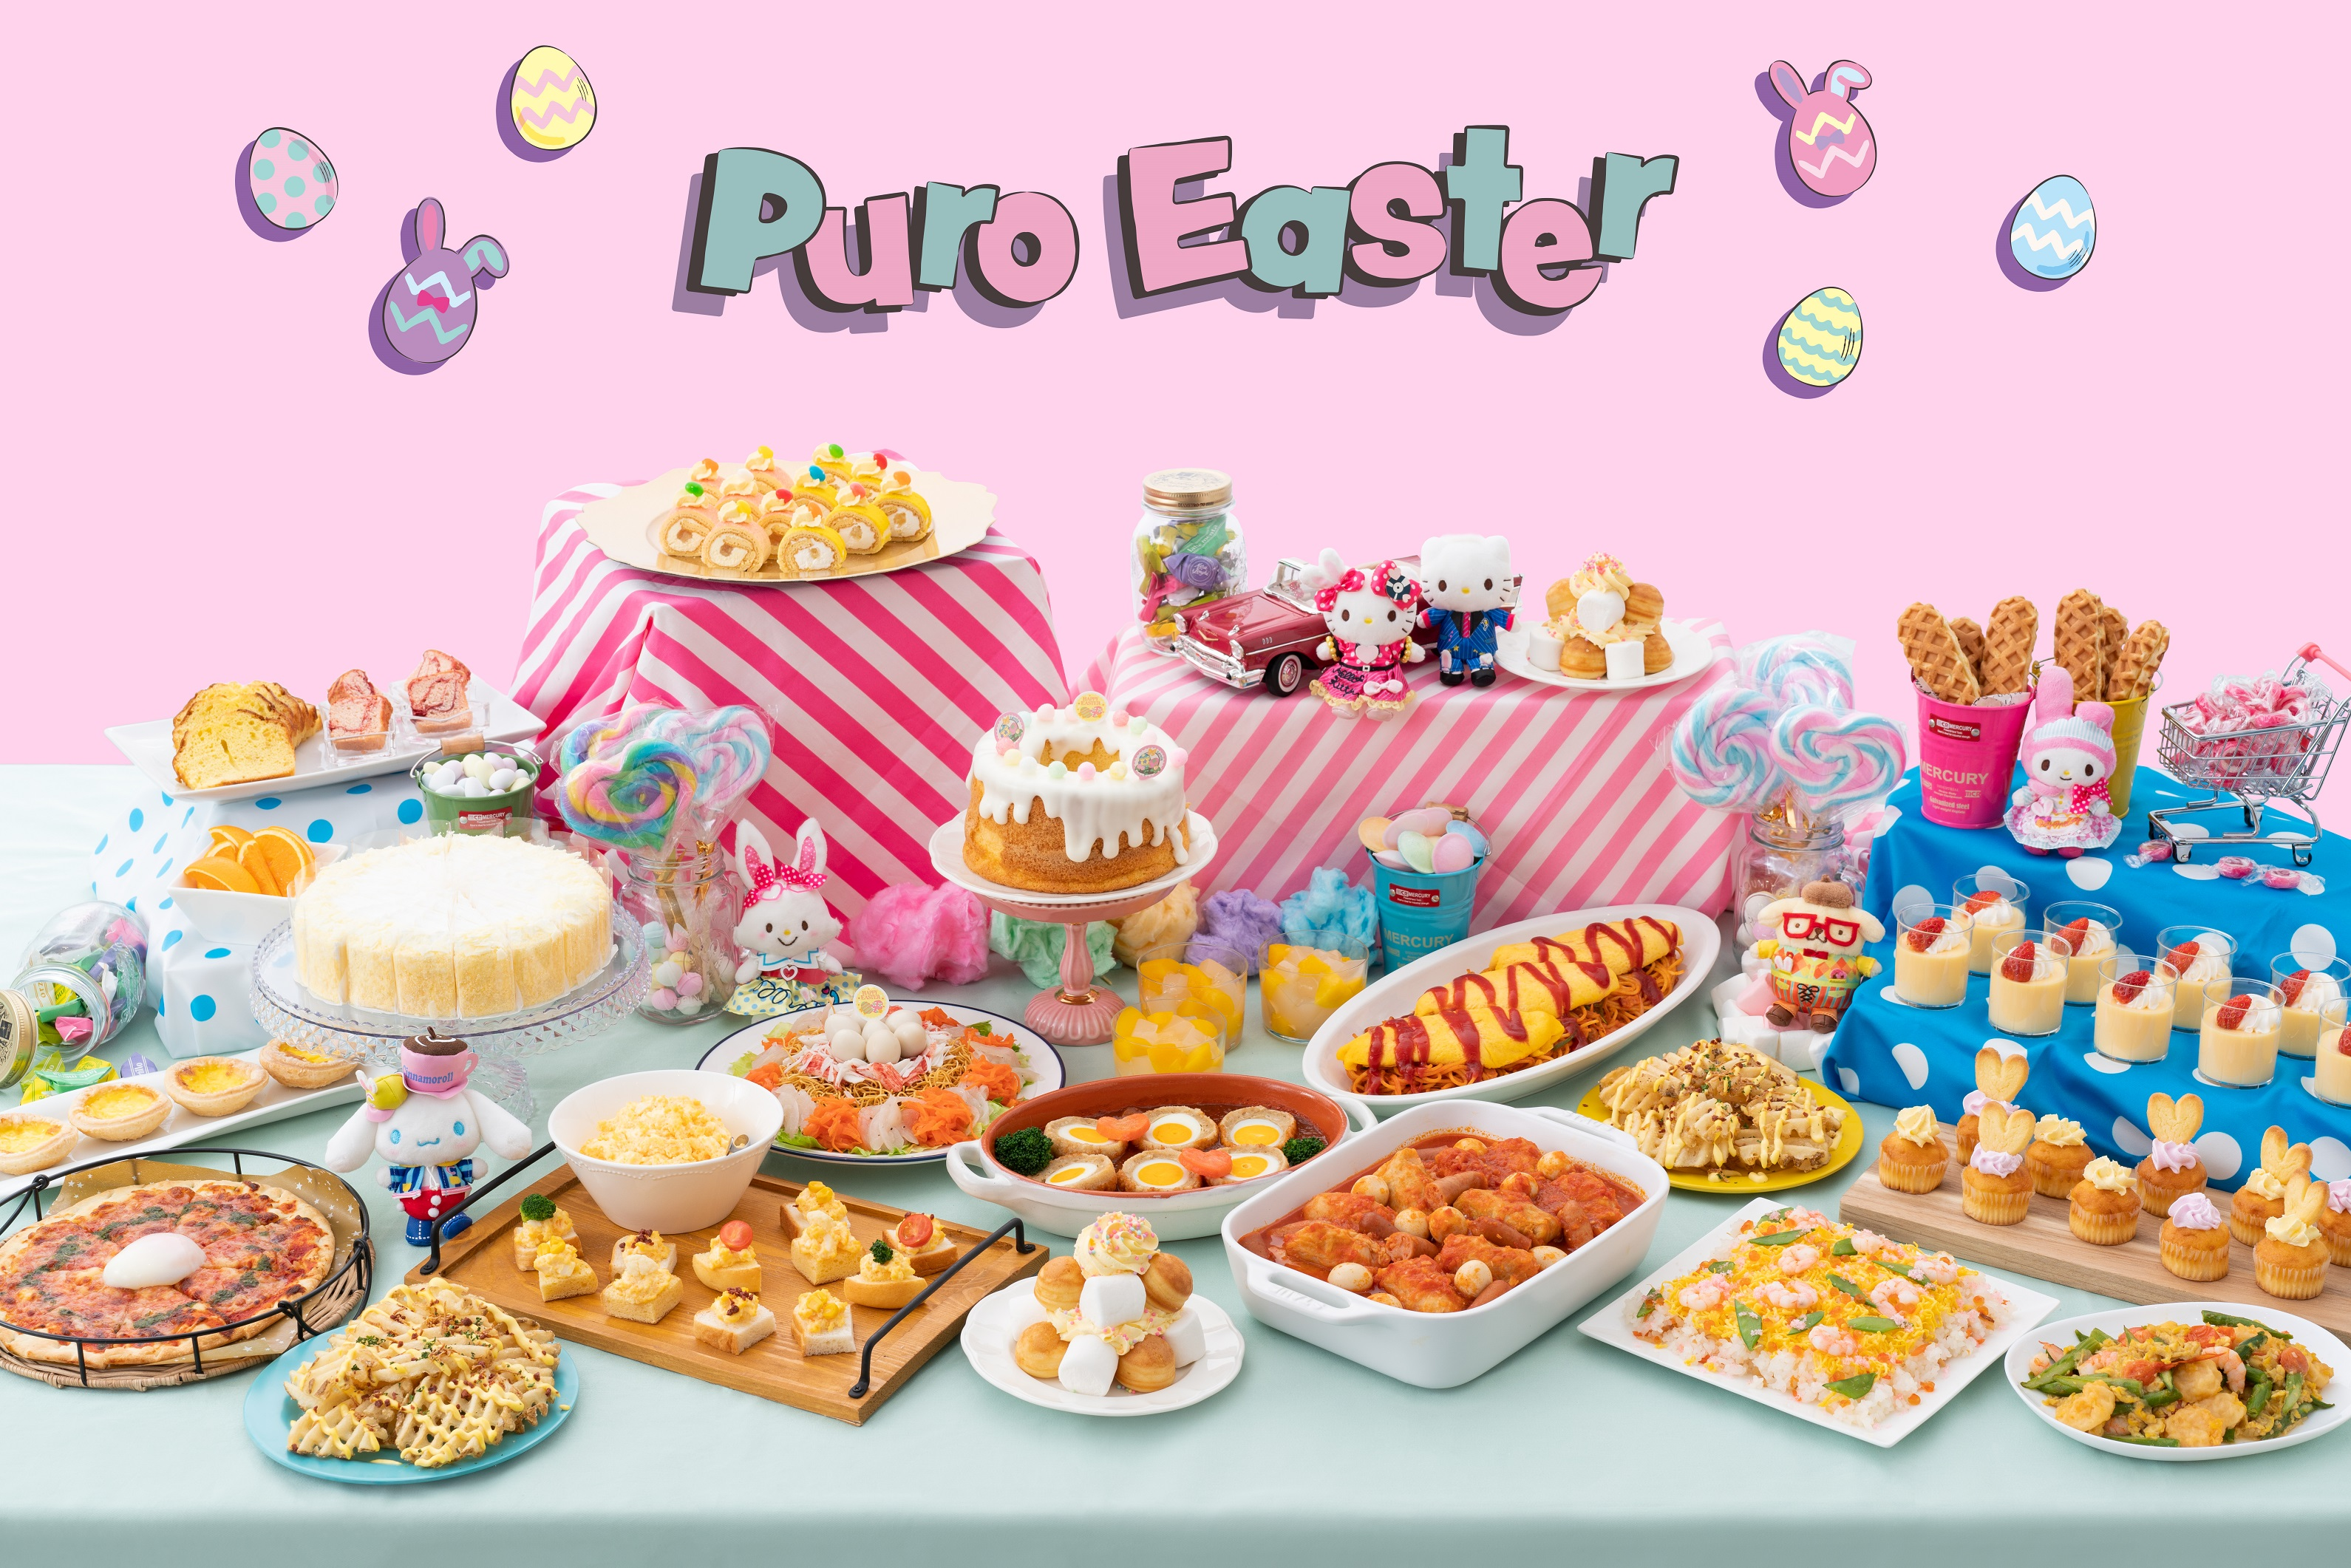 puro-easter-5-2